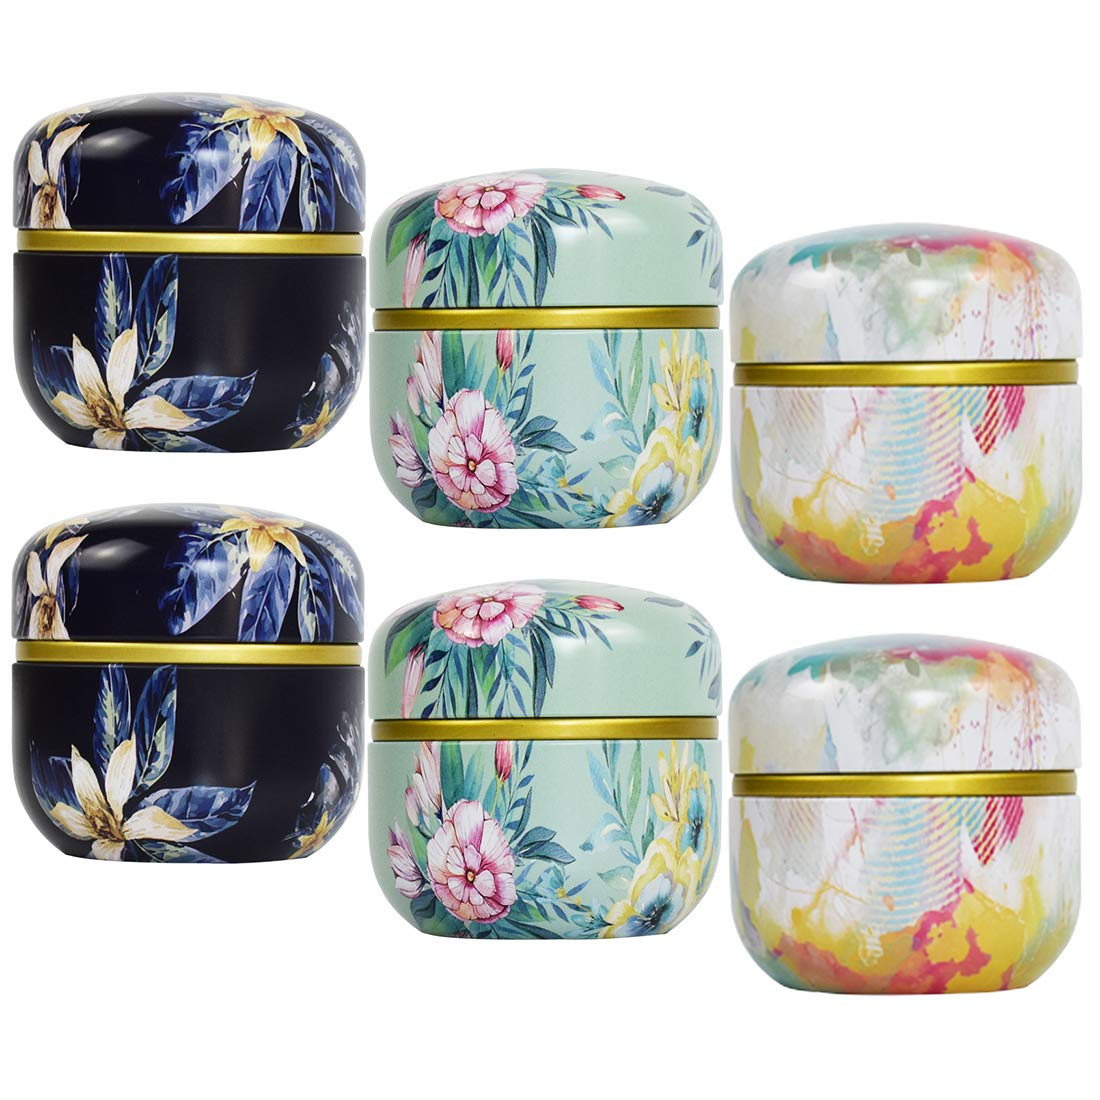 Tosnail 6 Pack Mini Tea Storage Containers Tea Tins Coffee Tins Food Storage Container for Tea, Coffee, Herb, Candy, Chocolate, Sugar, Spices, Candle by Tosnail